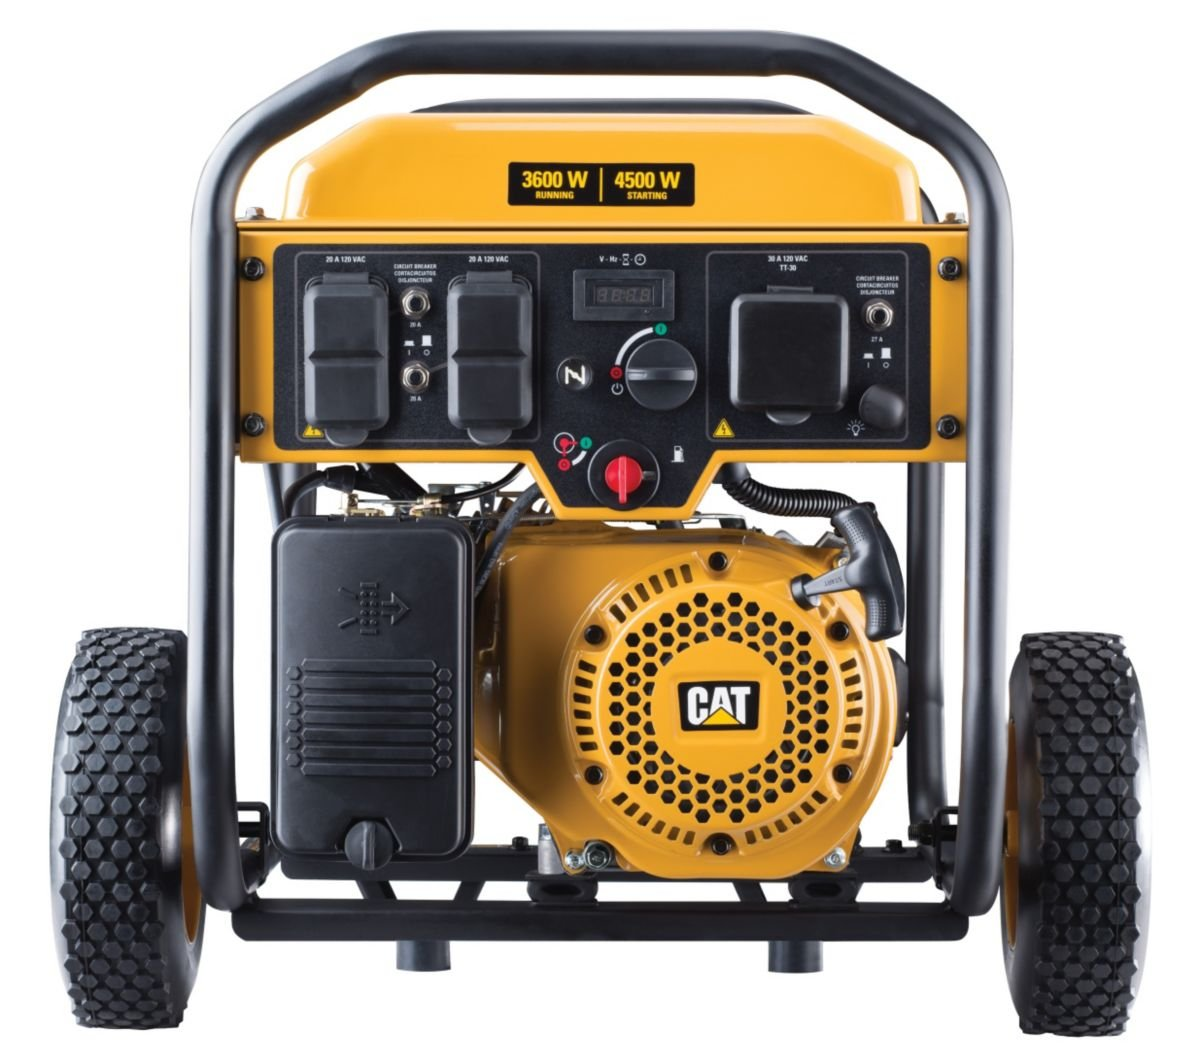 Cat Rp3600 3600 Running Watts 4500 Starting Gas 220 Volts A C Compressor And Cooling Fan Wiring Schematic Powered Portable Generator 490 6488 Garden Outdoor